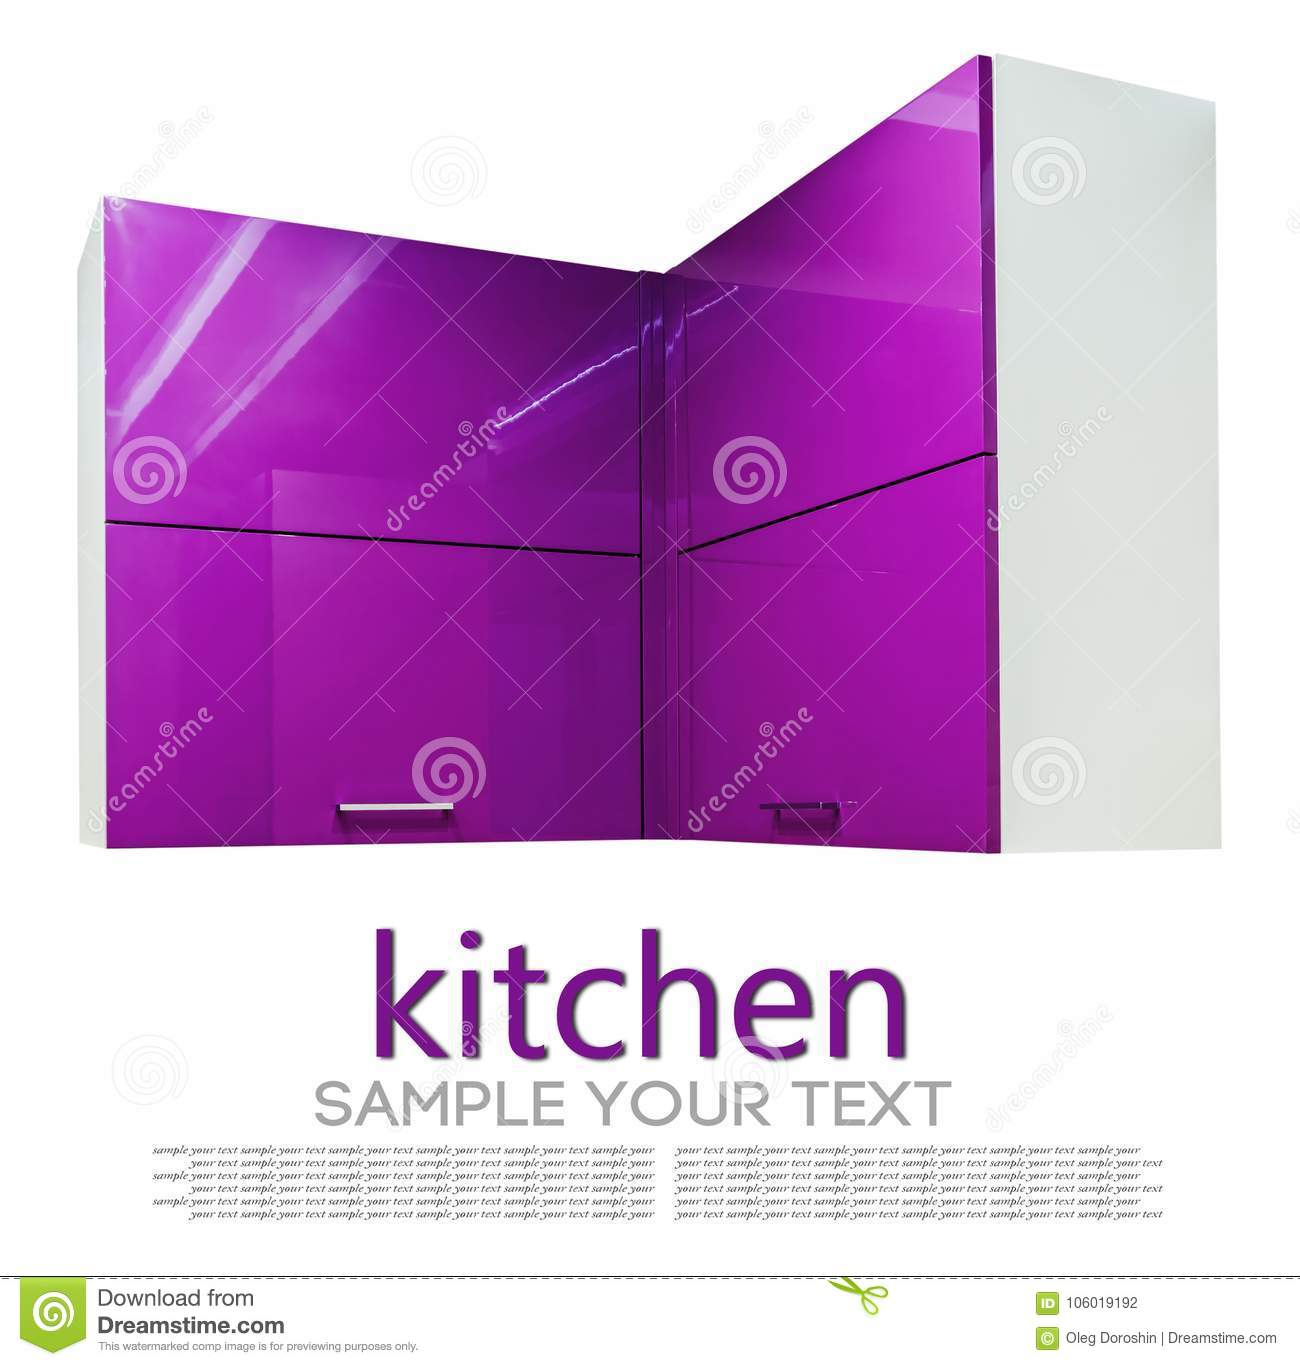 Kitchen Cabinet With Chipboard Shelves With Closed Doors Purple